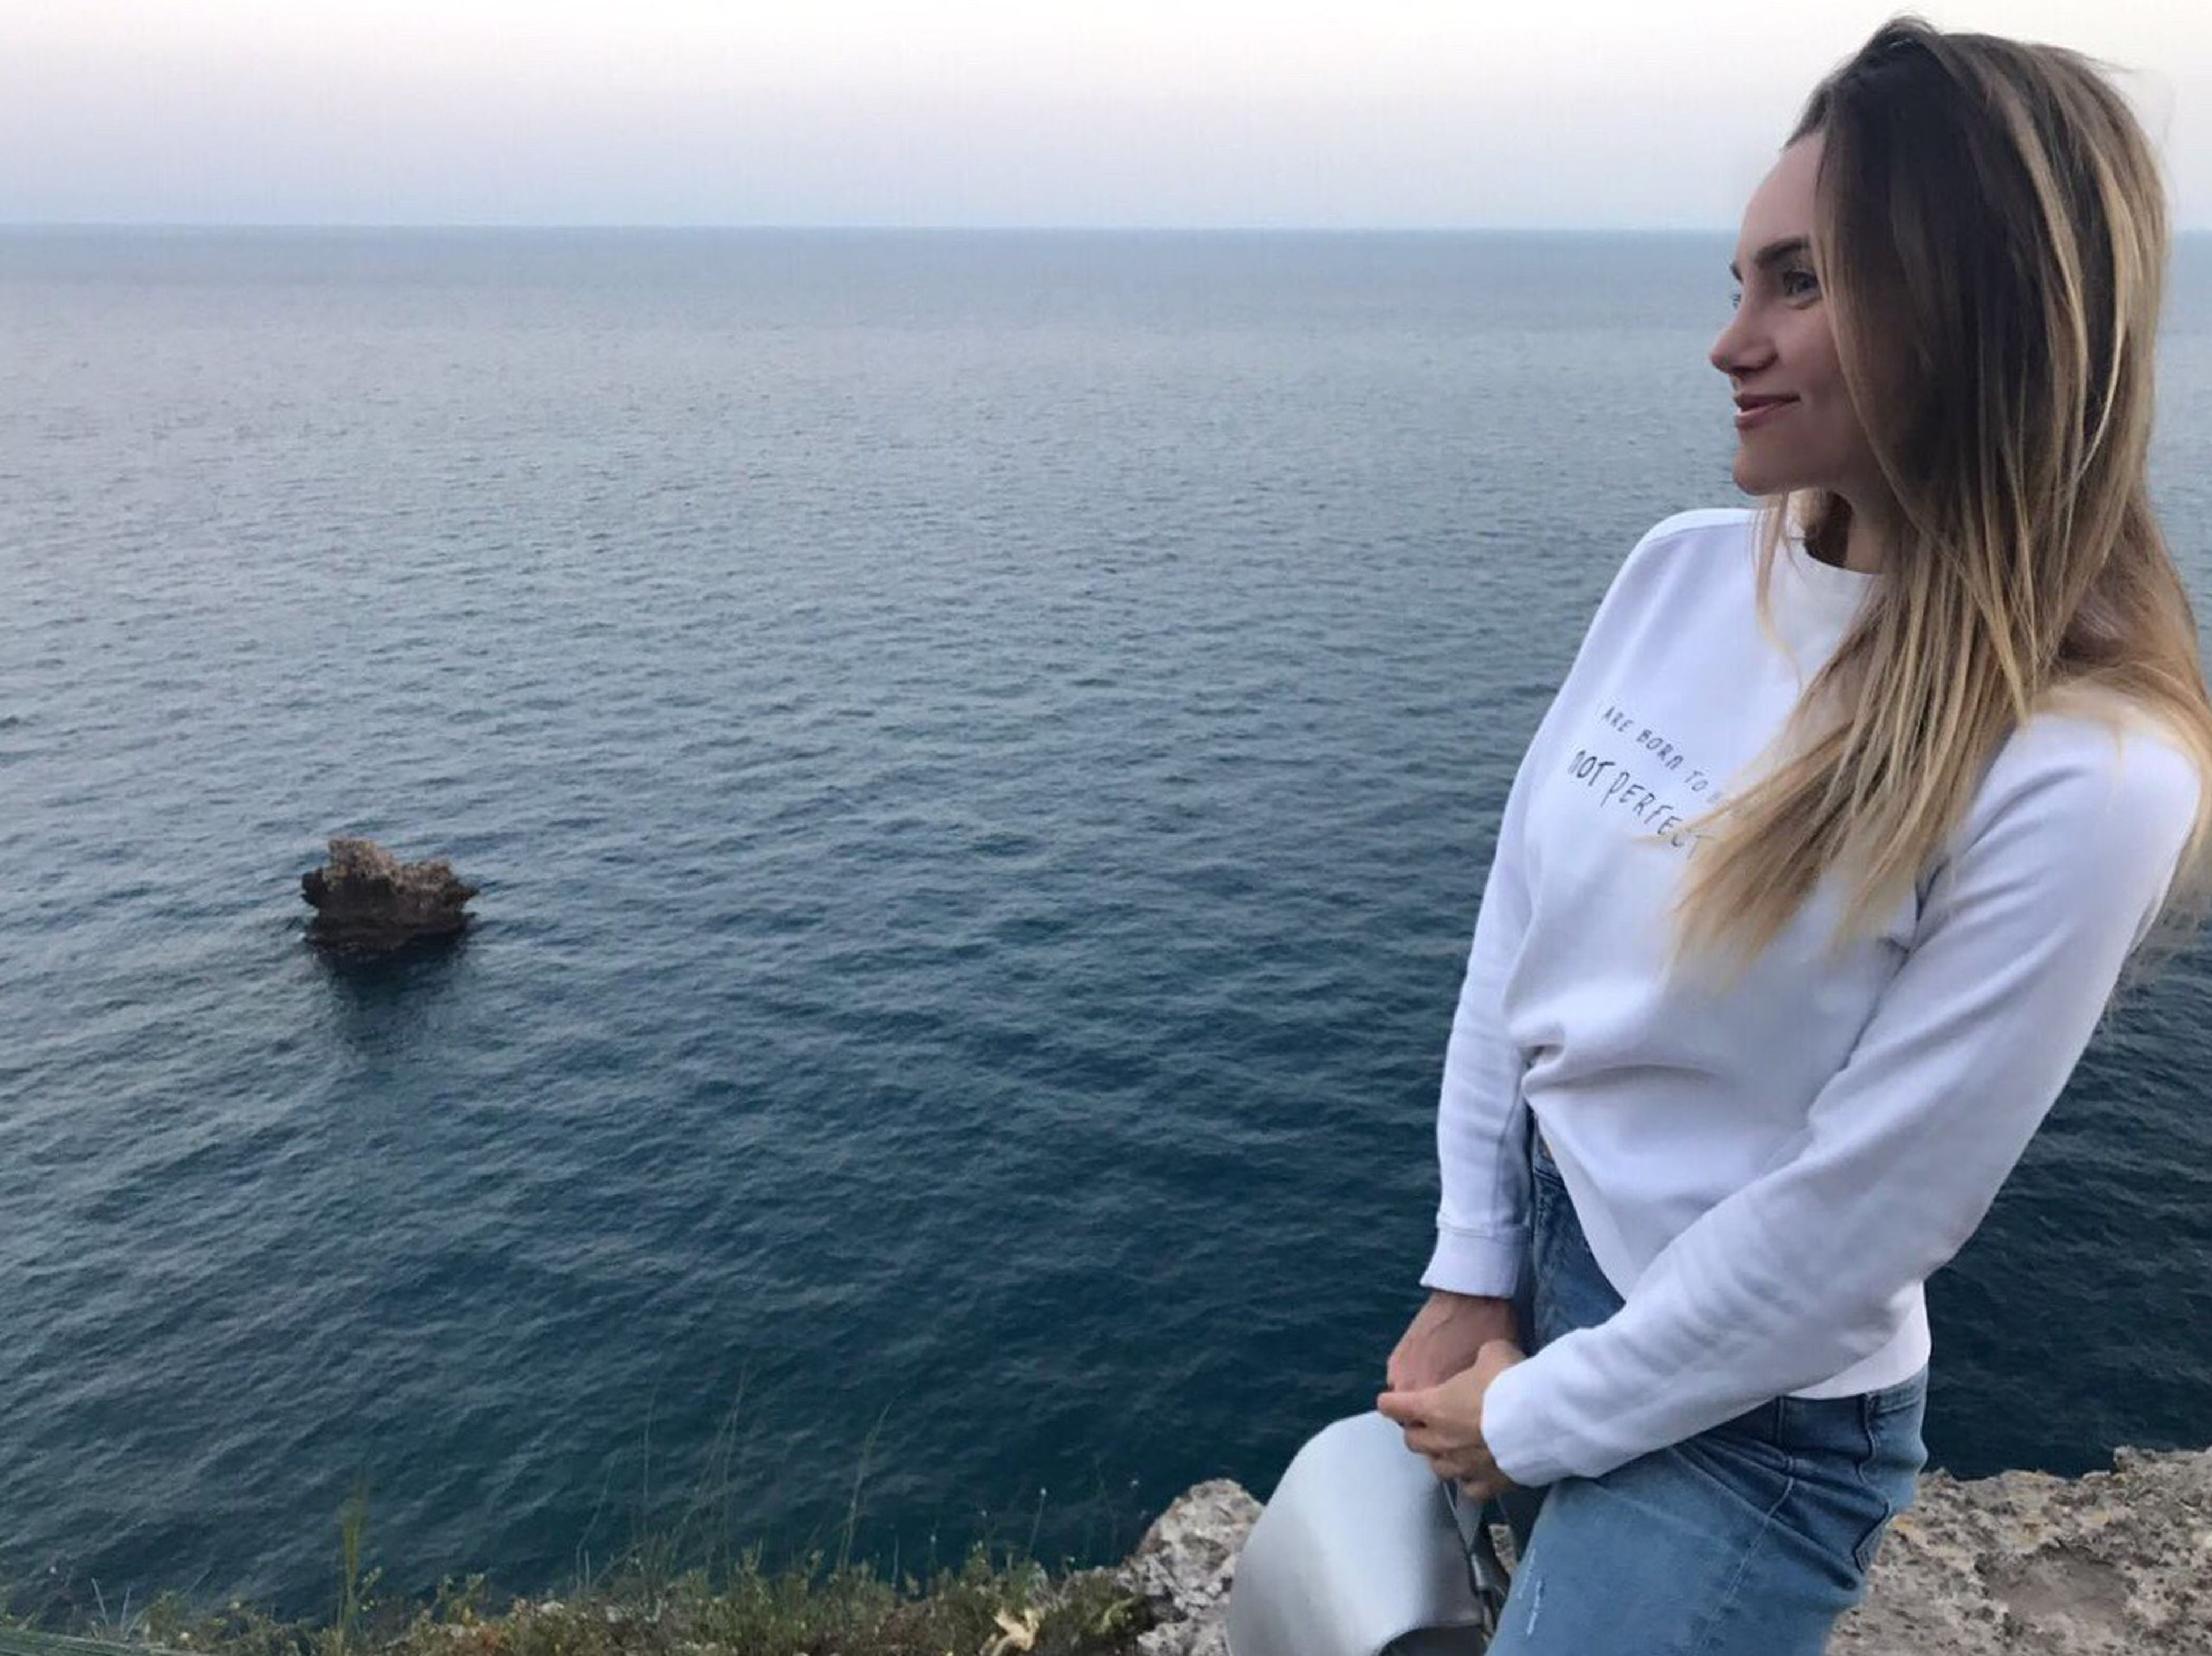 sea, one person, water, real people, nature, leisure activity, outdoors, day, young adult, beach, casual clothing, horizon over water, young women, standing, tranquility, lifestyles, relaxation, vacations, sitting, blond hair, beauty in nature, sky, people